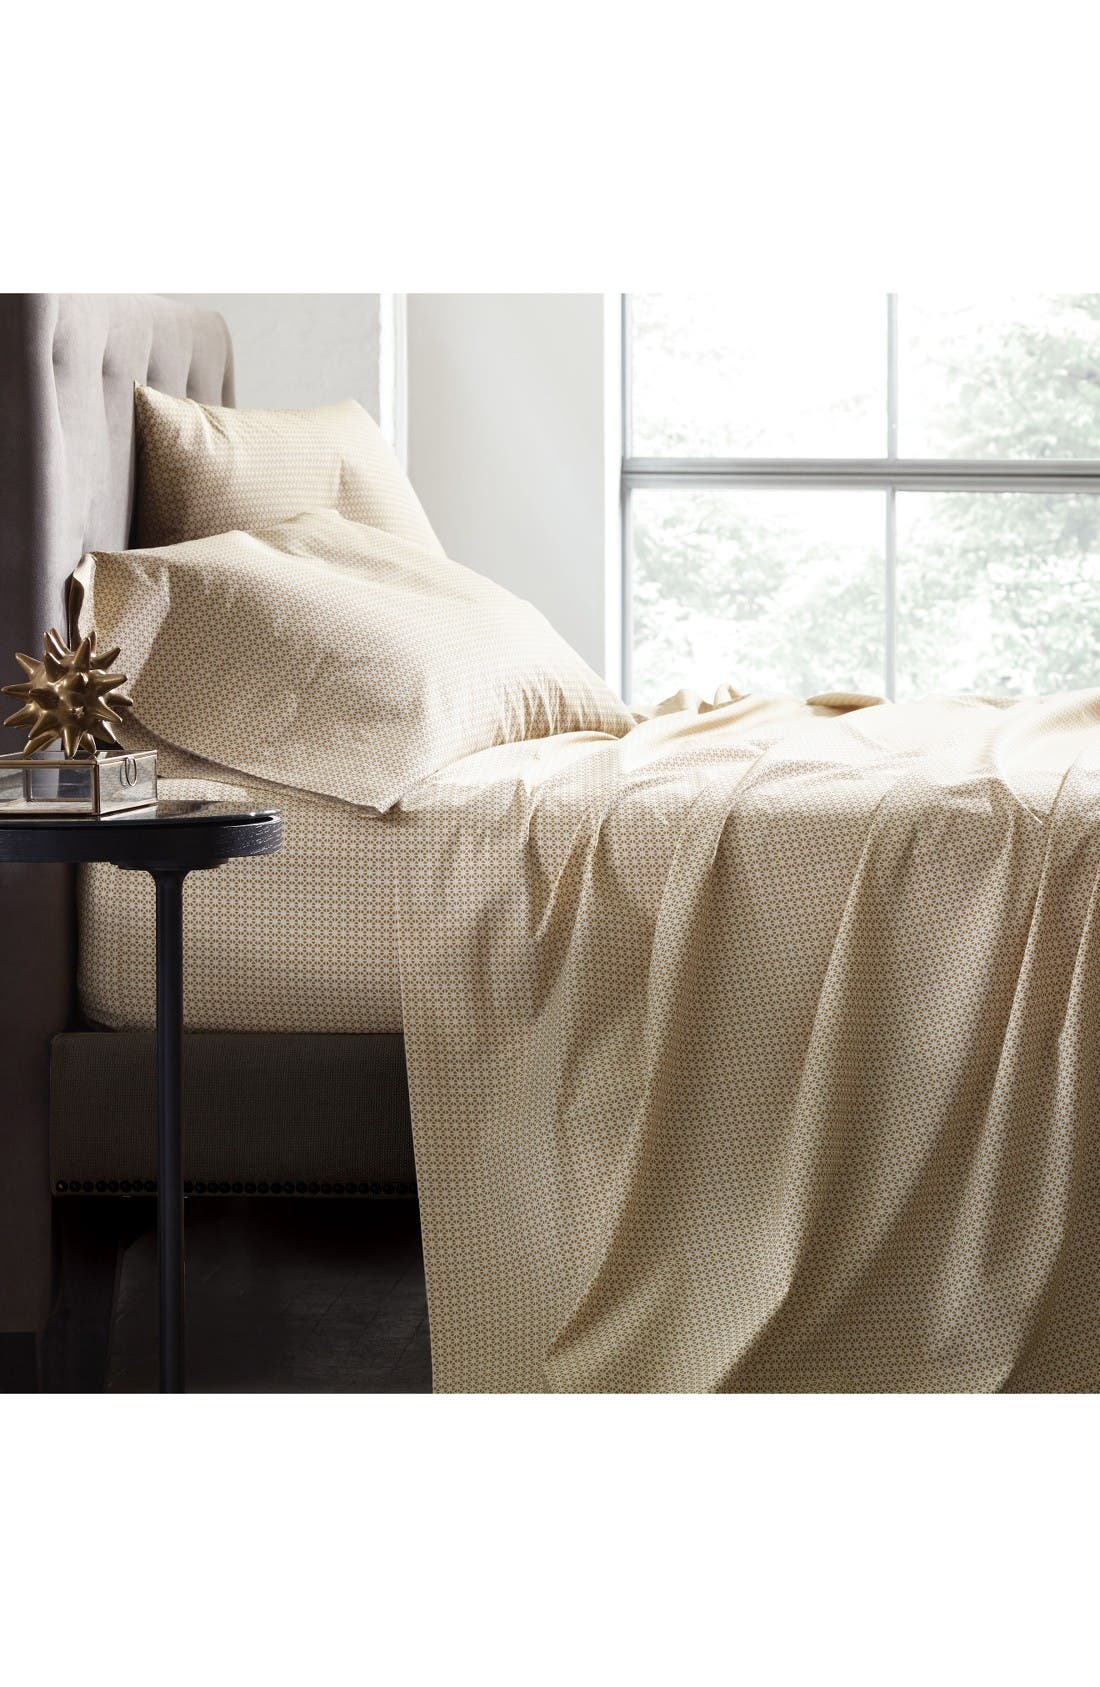 Fez Ochre 200 Thread Count Sheet Set,                         Main,                         color, White